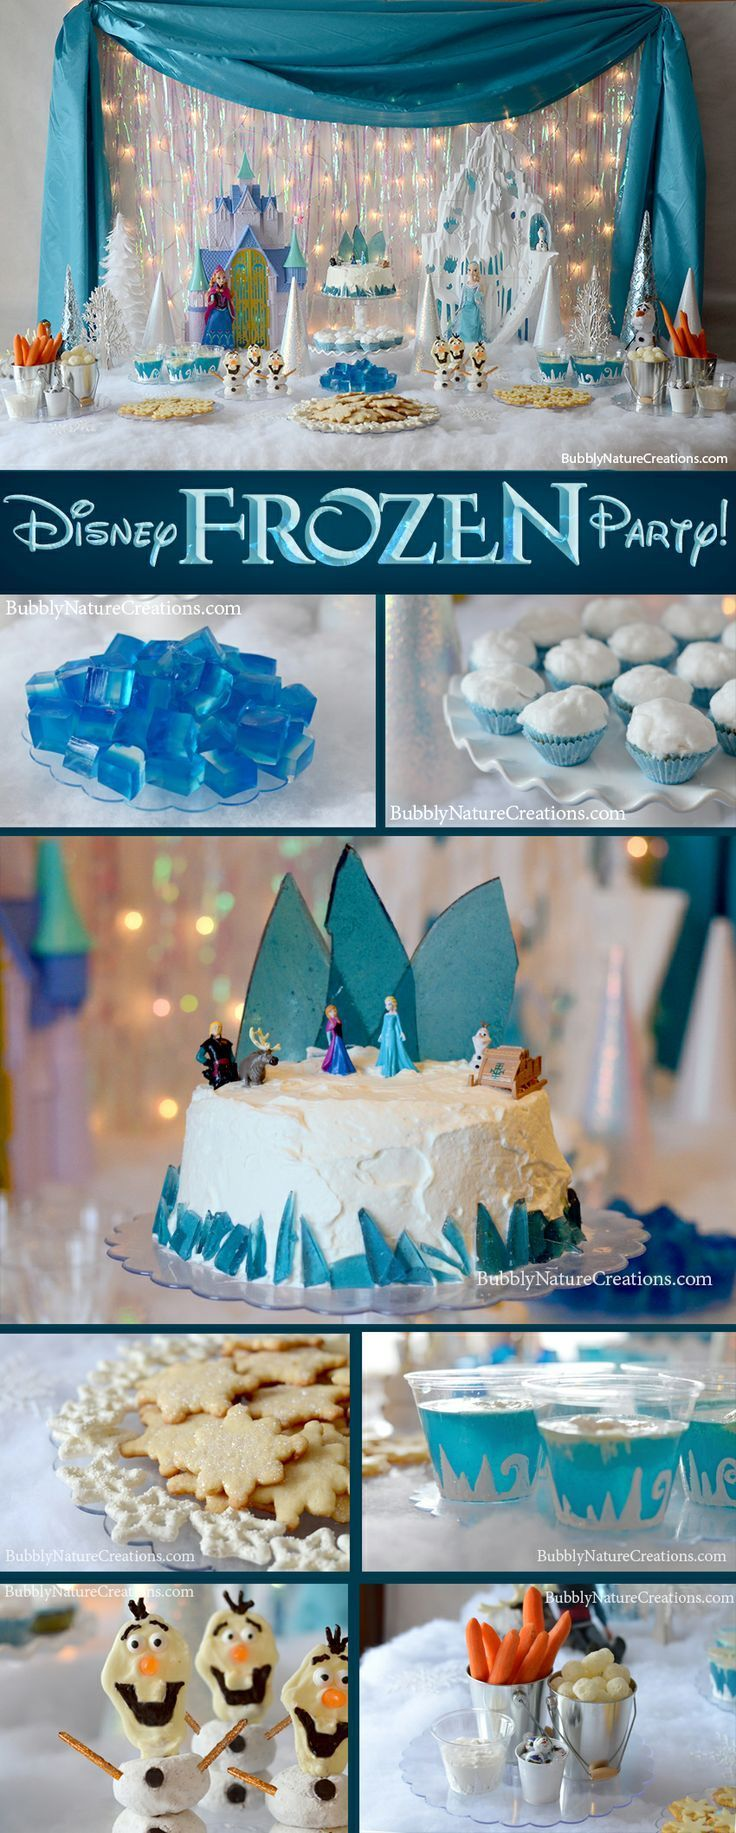 Frozen Princess Birthday Party Theme The cake would be easy to